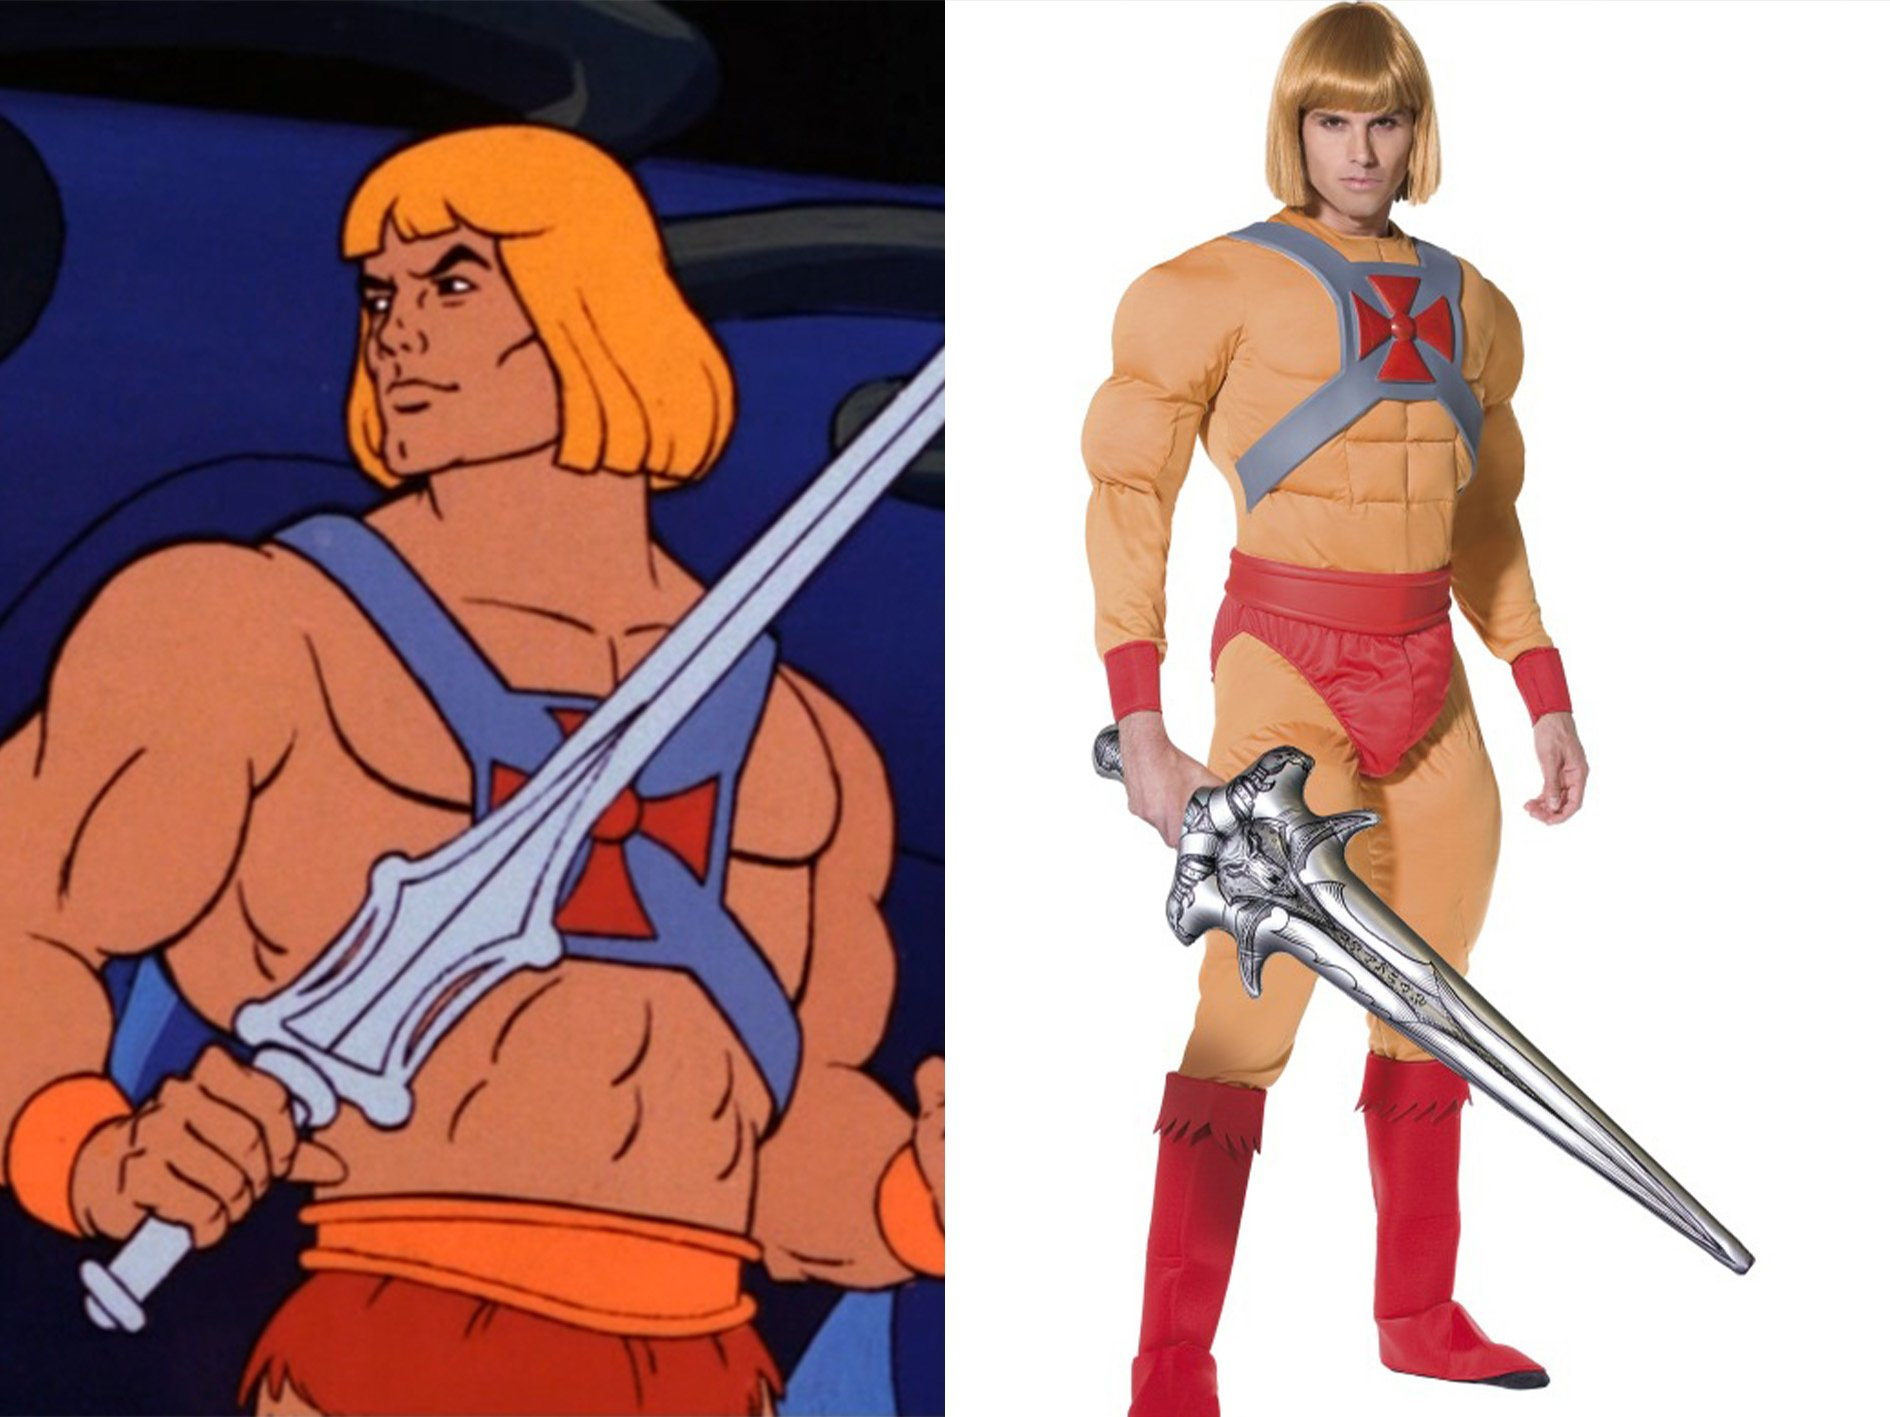 He Man 15 Halloween Costumes Inspired By The 80s - Who Will You Go As?